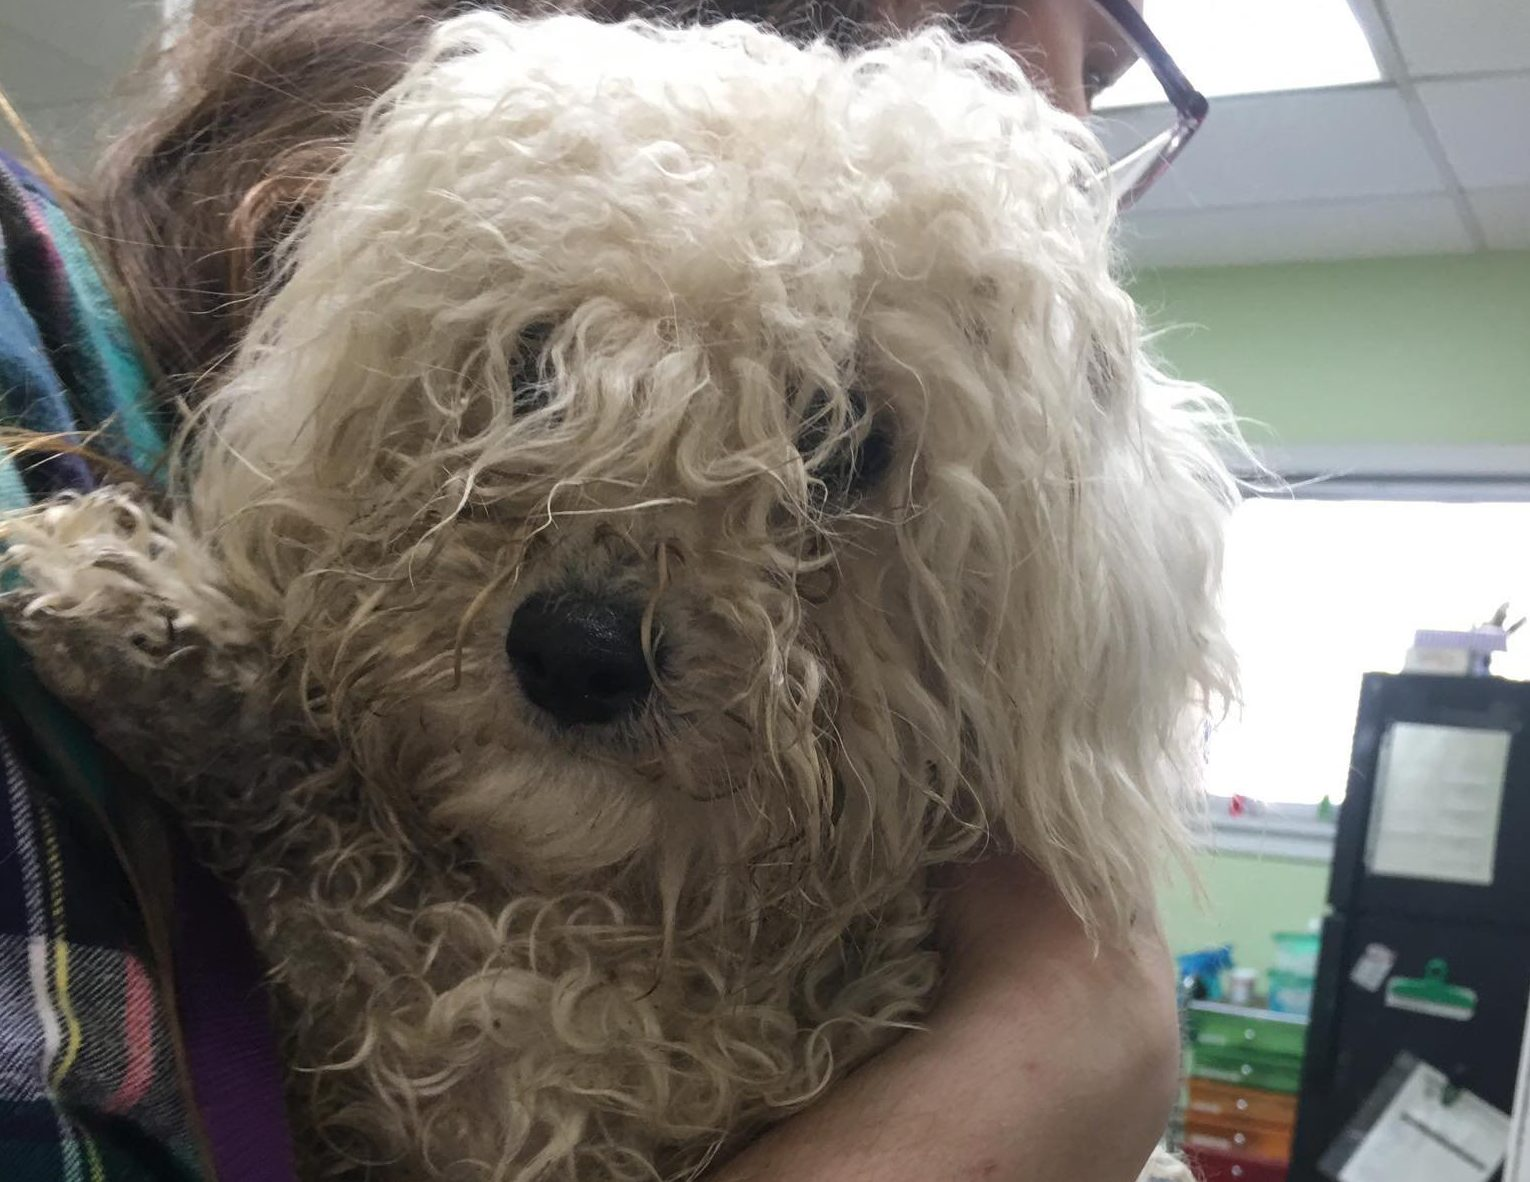 METRO GRAB - Facebook Furry Friends Refuge - no permission Dumped dogs were so matted they couldn't move https://www.facebook.com/pg/ffrefuge/photos/?ref=page_internal Credit: Furry Friends Refuge